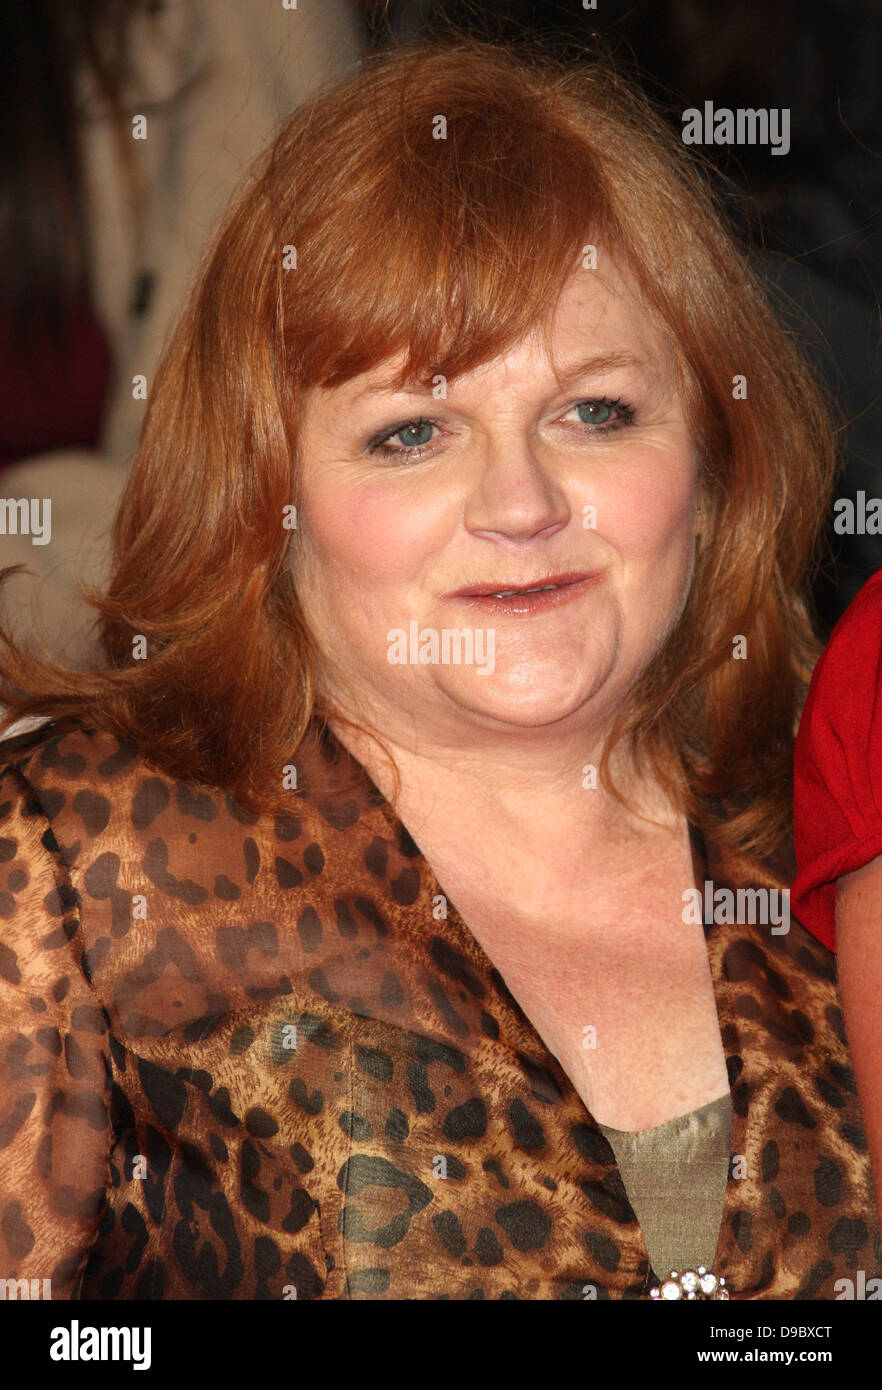 Lesley Nicol The National Television Awards 2012 (NTA's) - Arrivals London, England - 25.01.12 - Stock Image